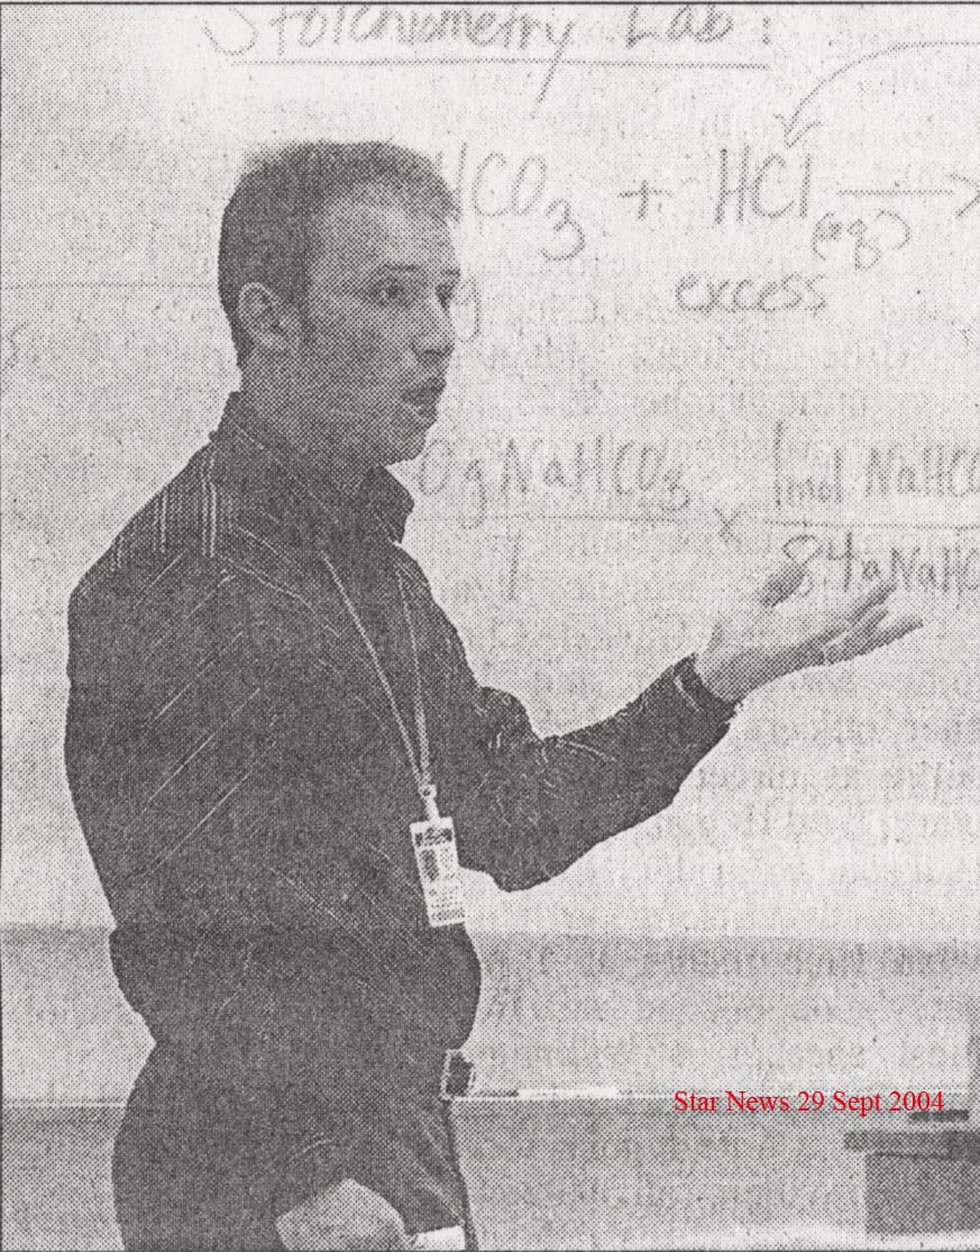 A yearbook photo shows Michael Kelly in his classroom in 2004.